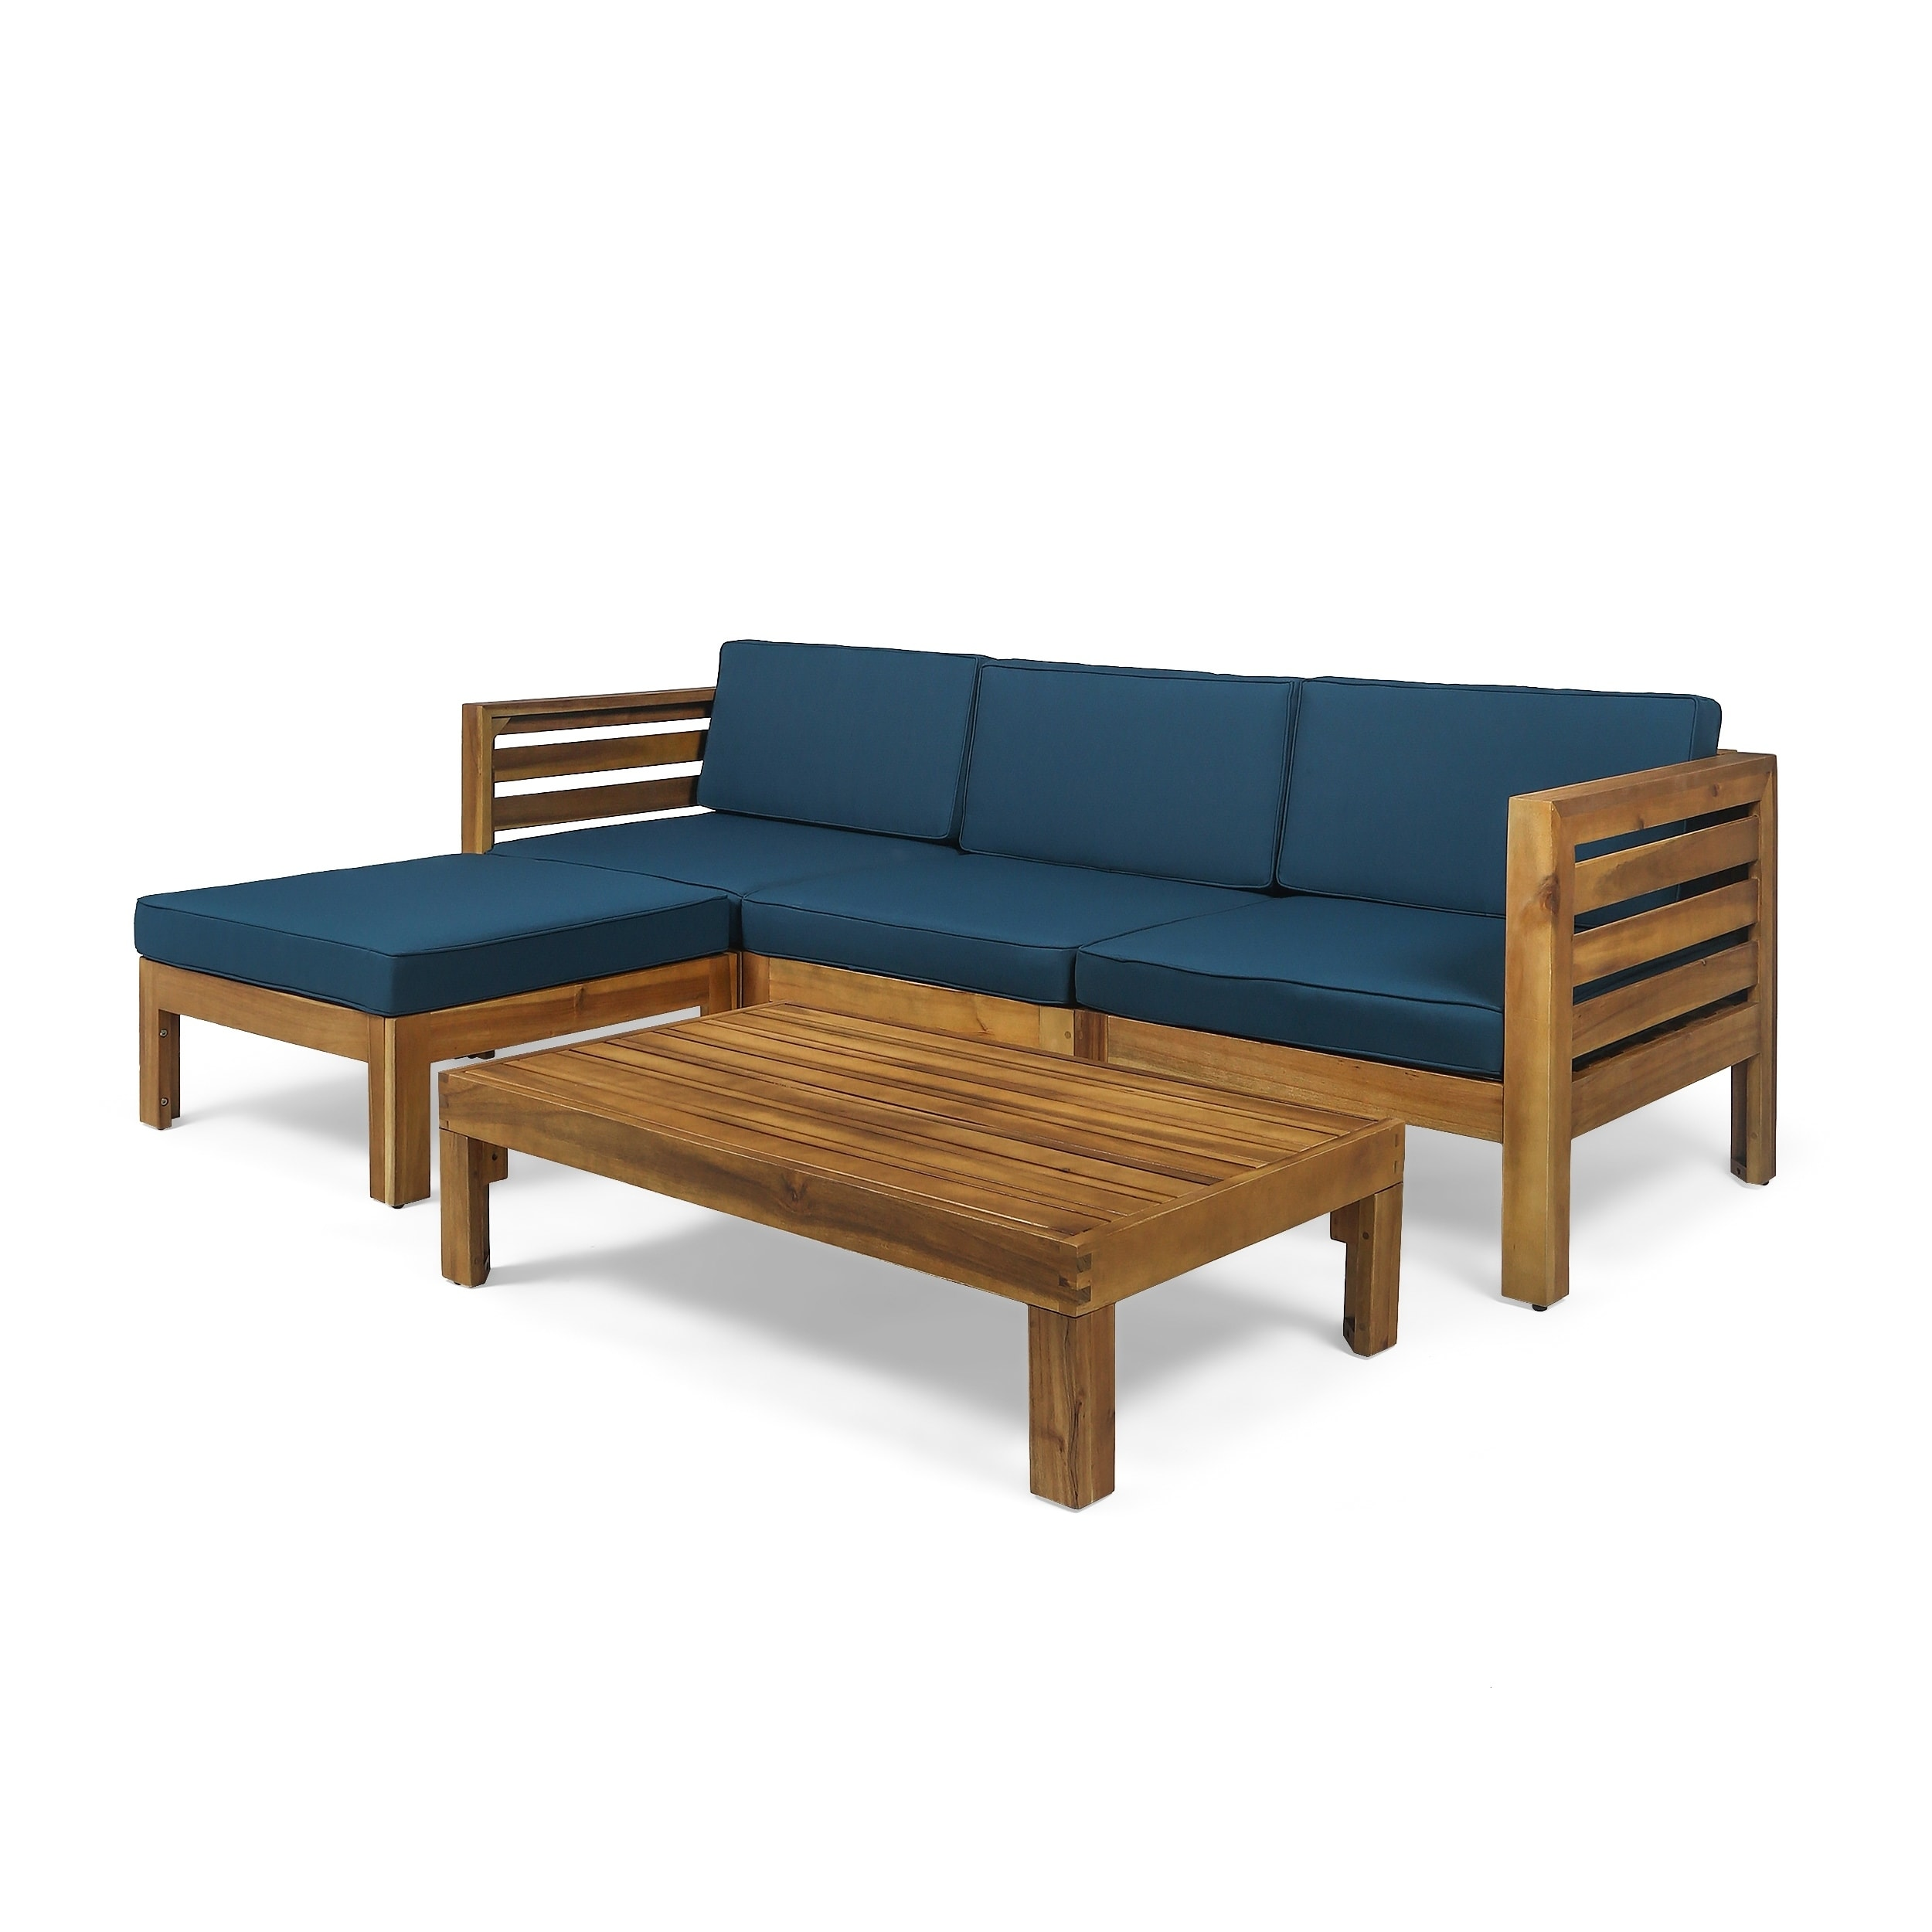 Christopher Knight Home Cambridge Outdoor 5 Piece Acacia Wood Sofa Set by